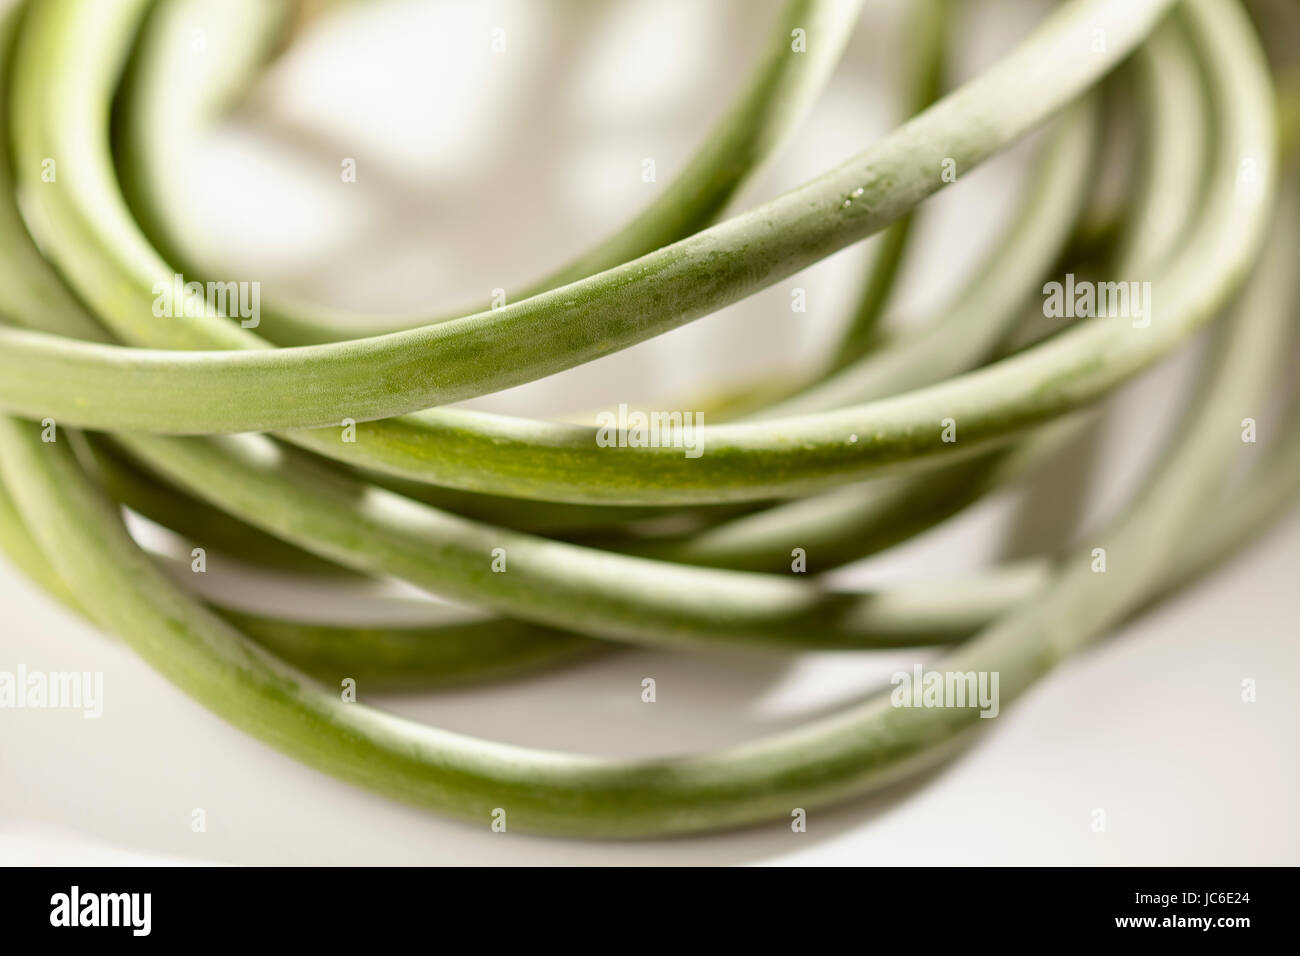 freshly picked garlic scapes from Pennsylvania, USA - Stock Image